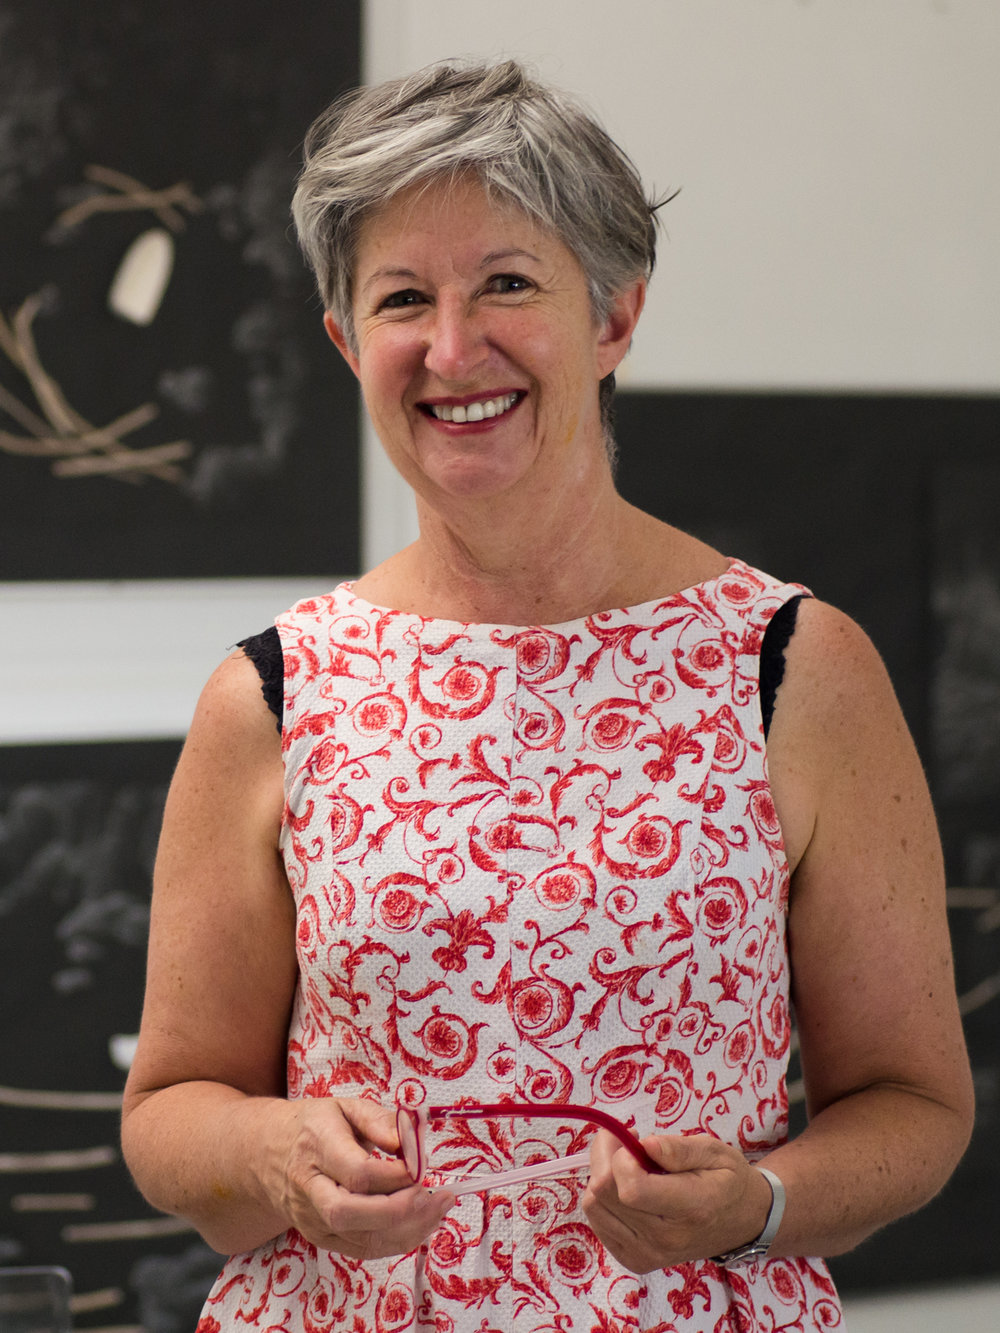 Julie Payne has exhibited in many solo and collaborative exhibitions within Australia. Her interests are wide ranging which has led to a diverse arts practice incorporating sculpture, site specific gardens, drawings and installations. Site specific text gardens have been commissioned at the Royal Tasmanian Botanic Gardens, Woolmers Historic Site, the Cataract Gorge and at the Queen Victoria Museum and Art Gallery. Julie has lectured within the fields of Architecture, Furniture Design, and Sculpture at the University of Tasmania.